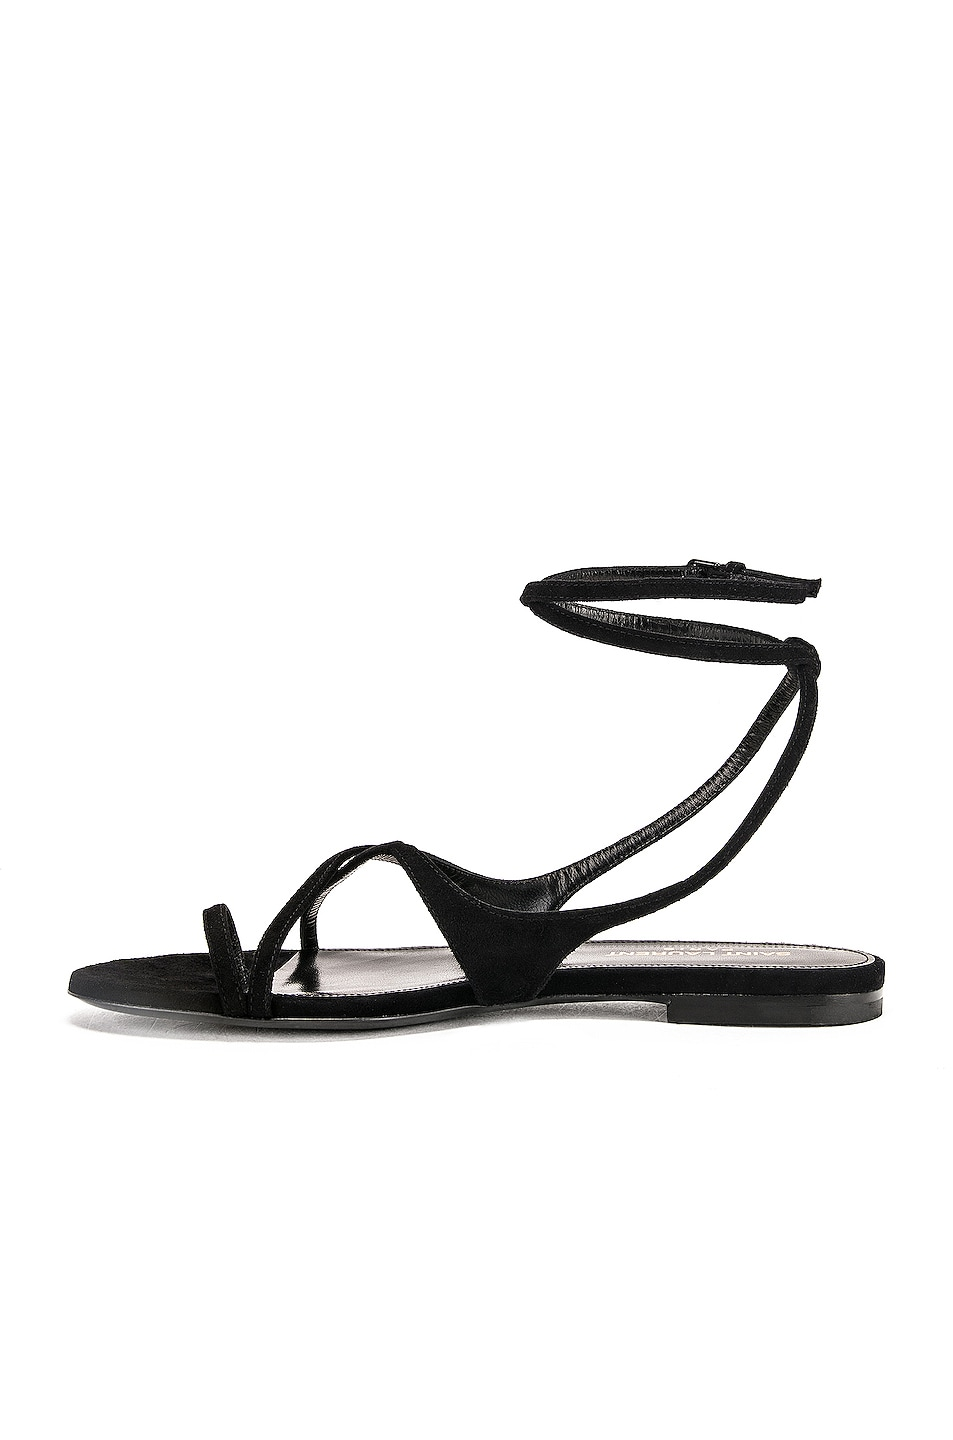 Image 5 of Saint Laurent Gia Sandal in Black